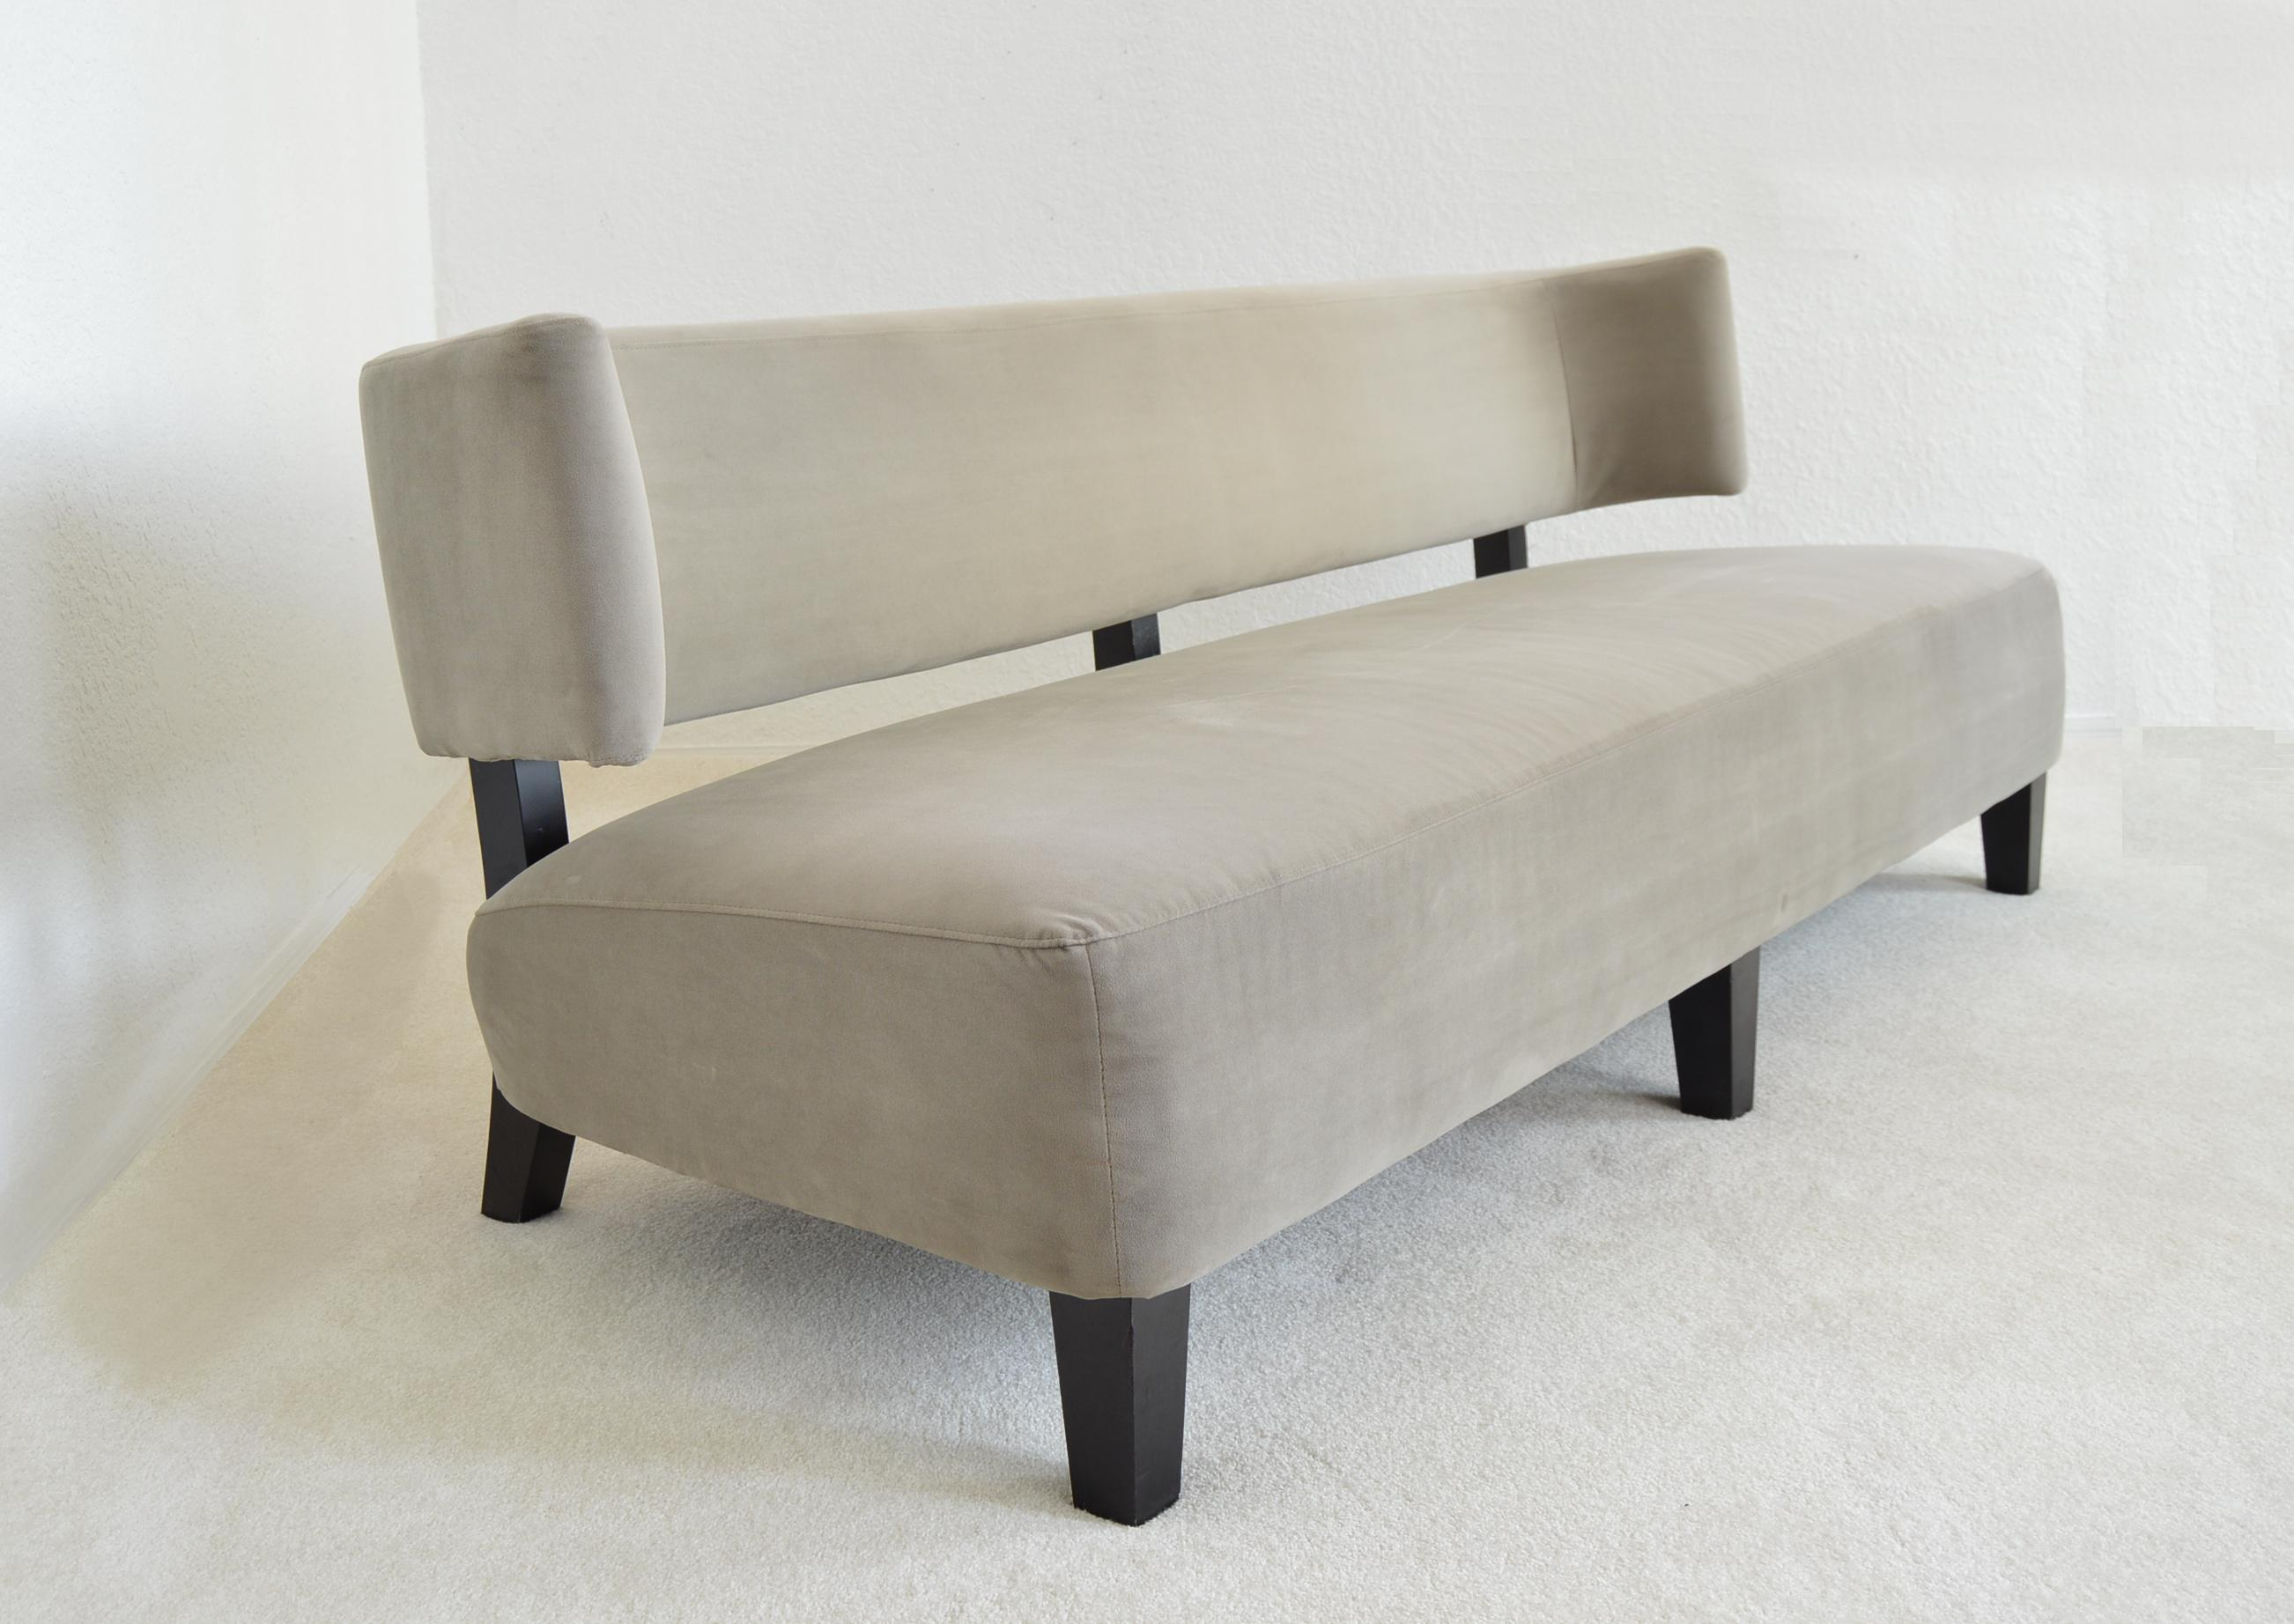 Vintage Contemporary Mid Century Organic Modern Style Upholstered Sage Gray  Sofa With Wood Legs Millennial MCM